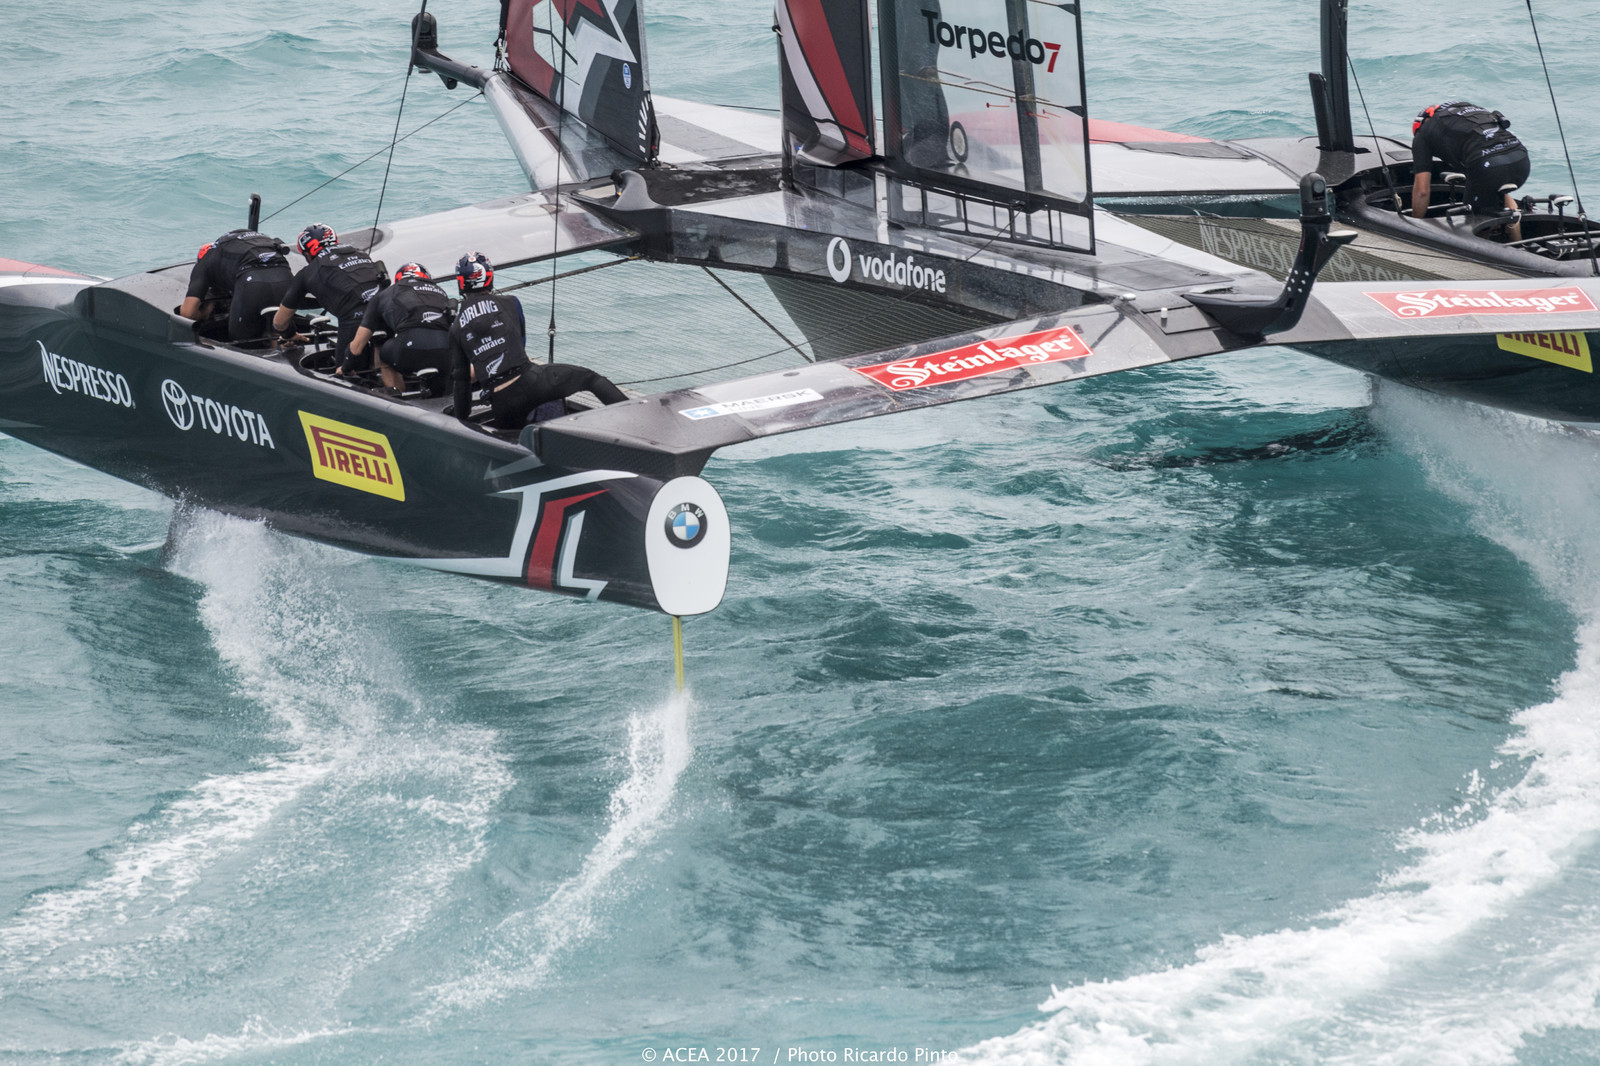 35th America's Cup Bermuda 2017 - Louis Vuitton America's Cup Qualifiers